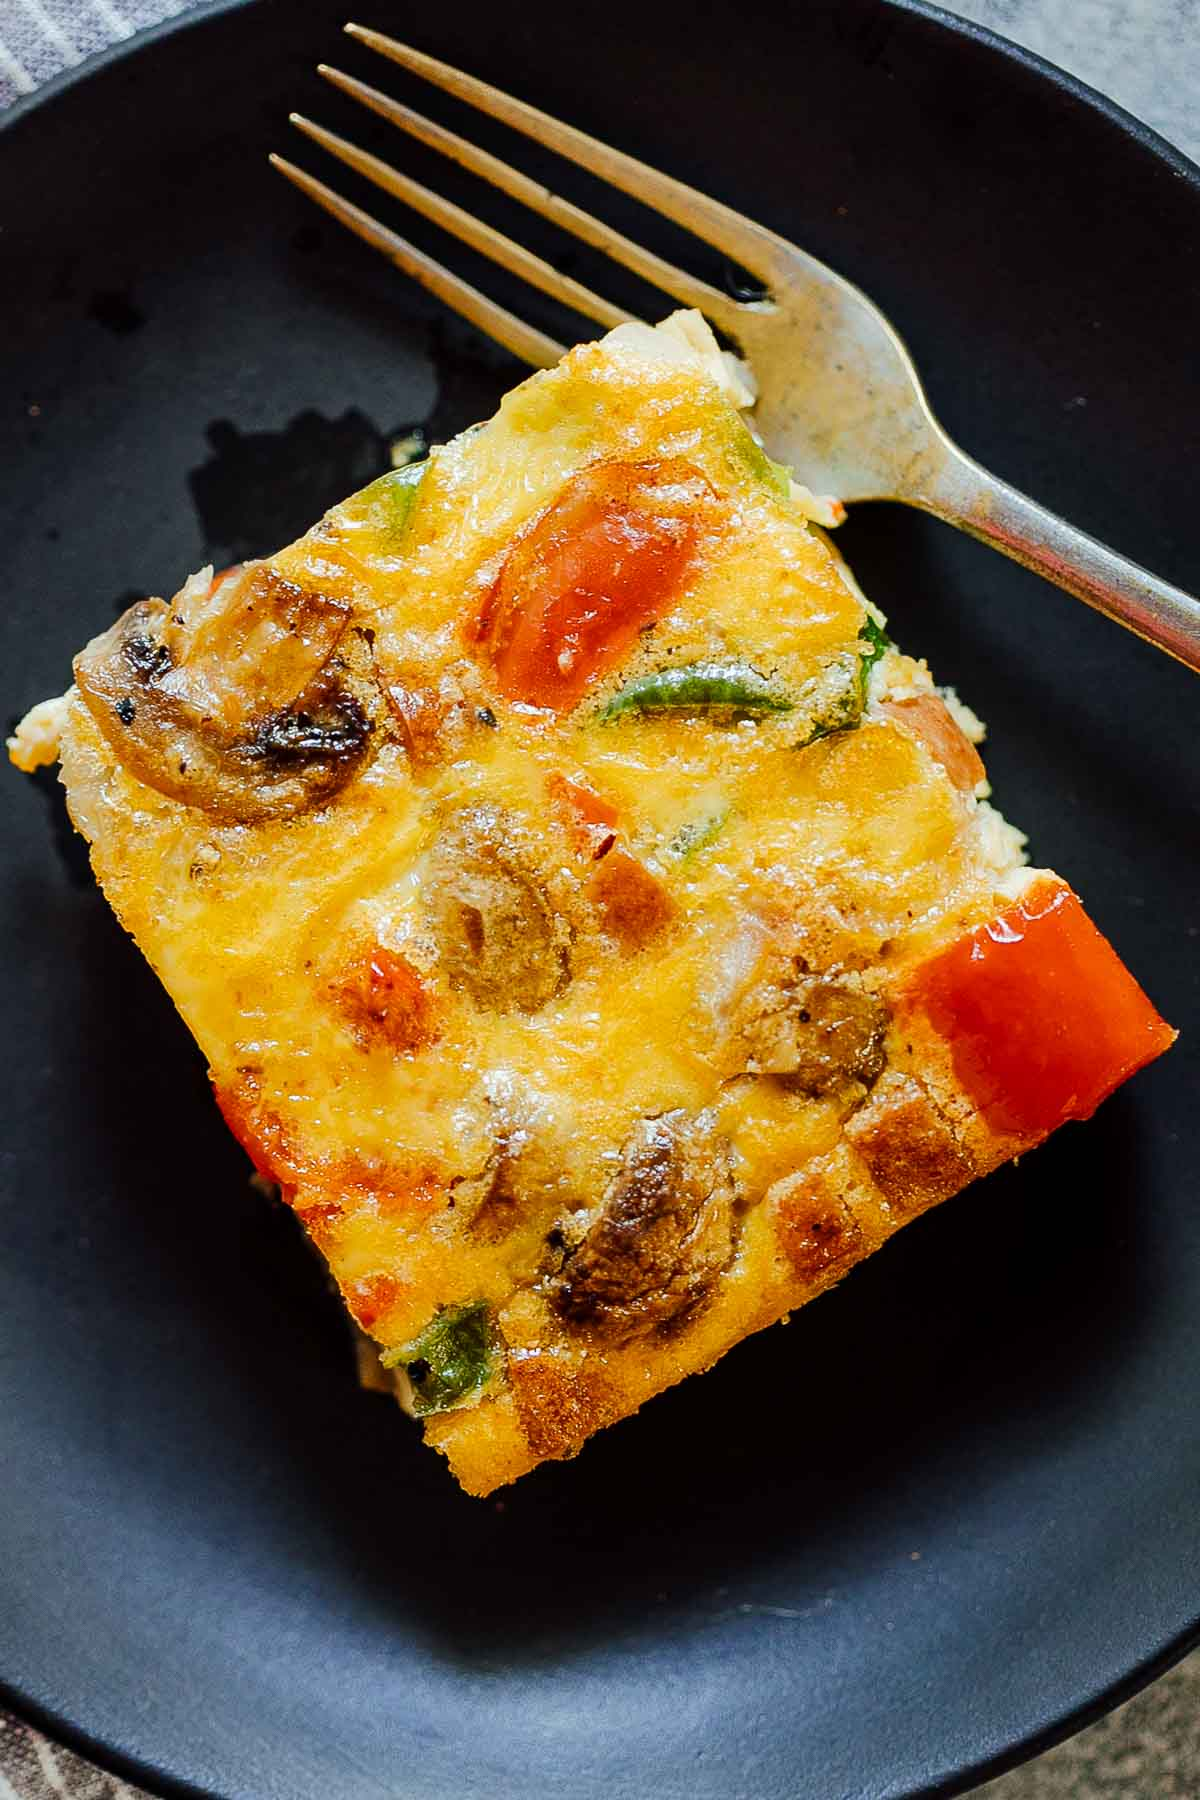 A slice of baked denver omelet breakfast casserole on a plate